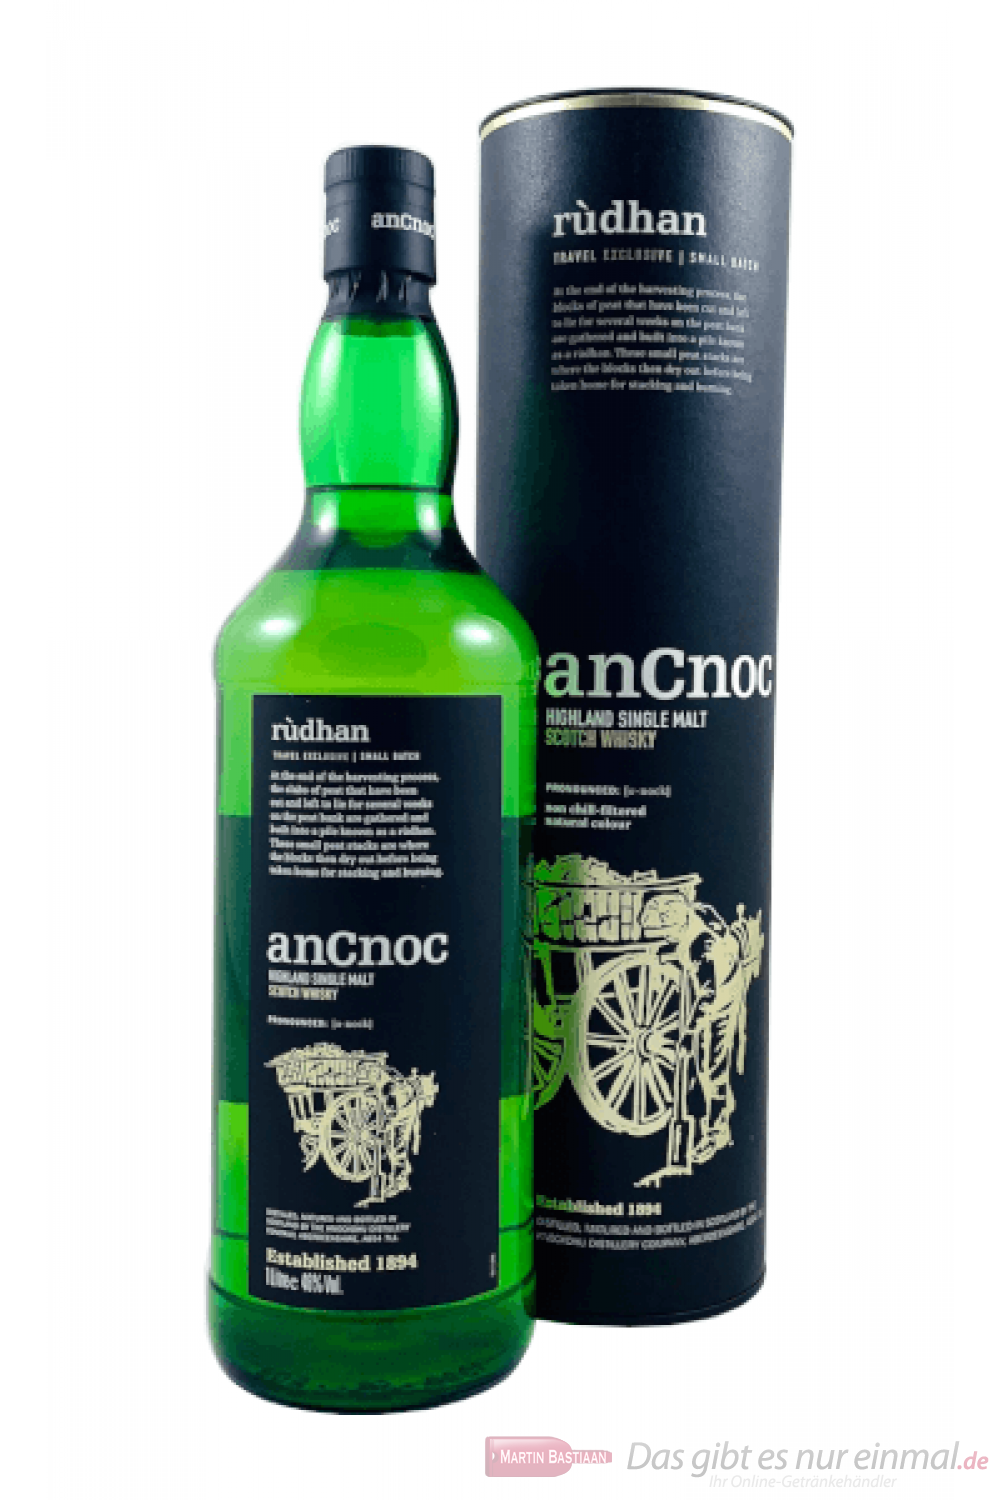 AnCnoc Rudhan Single Malt Scotch Whisky 0,7l